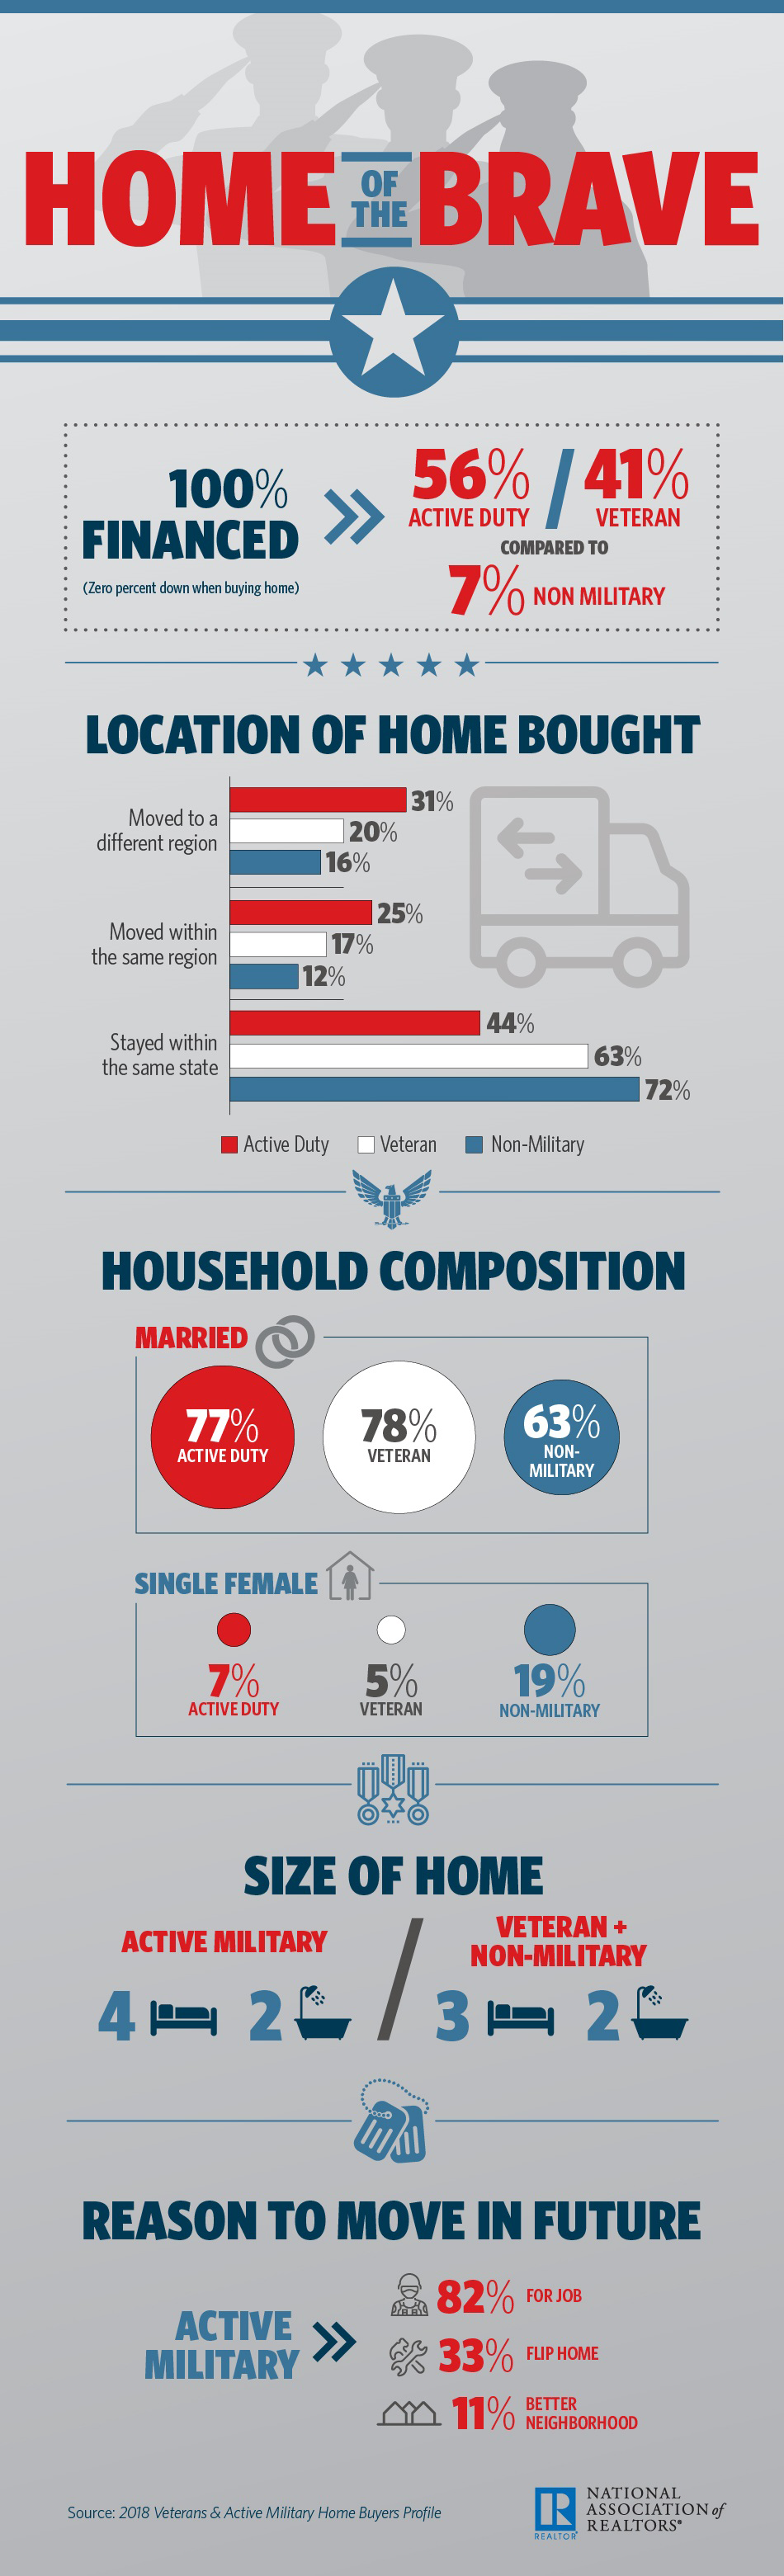 Service member Homeowner Facts - Infographic